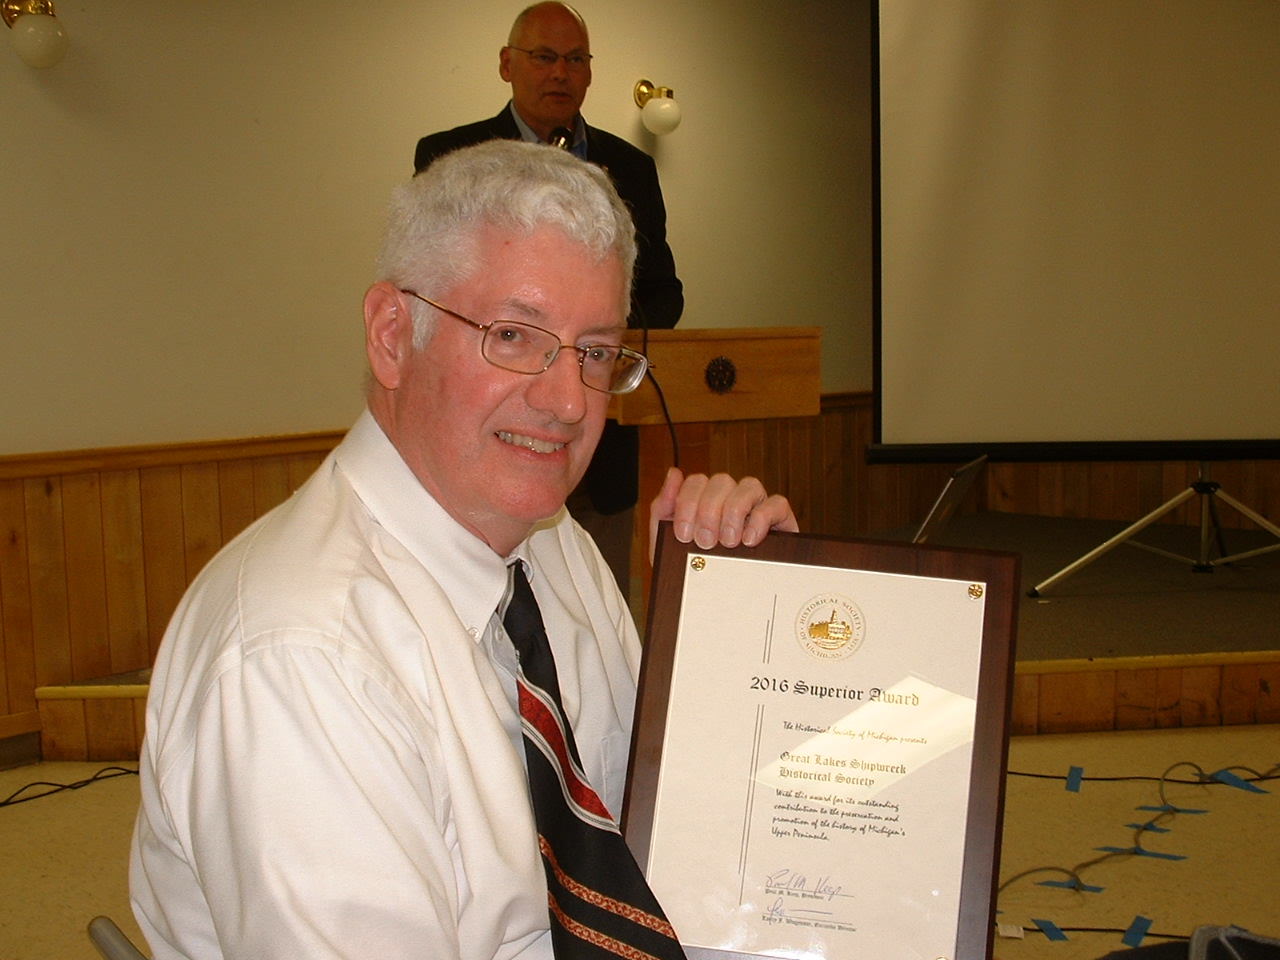 Sean Ley, Shipwreck Society Development Officer, holds the Superior Award, with HSM President Paul Keep in background.